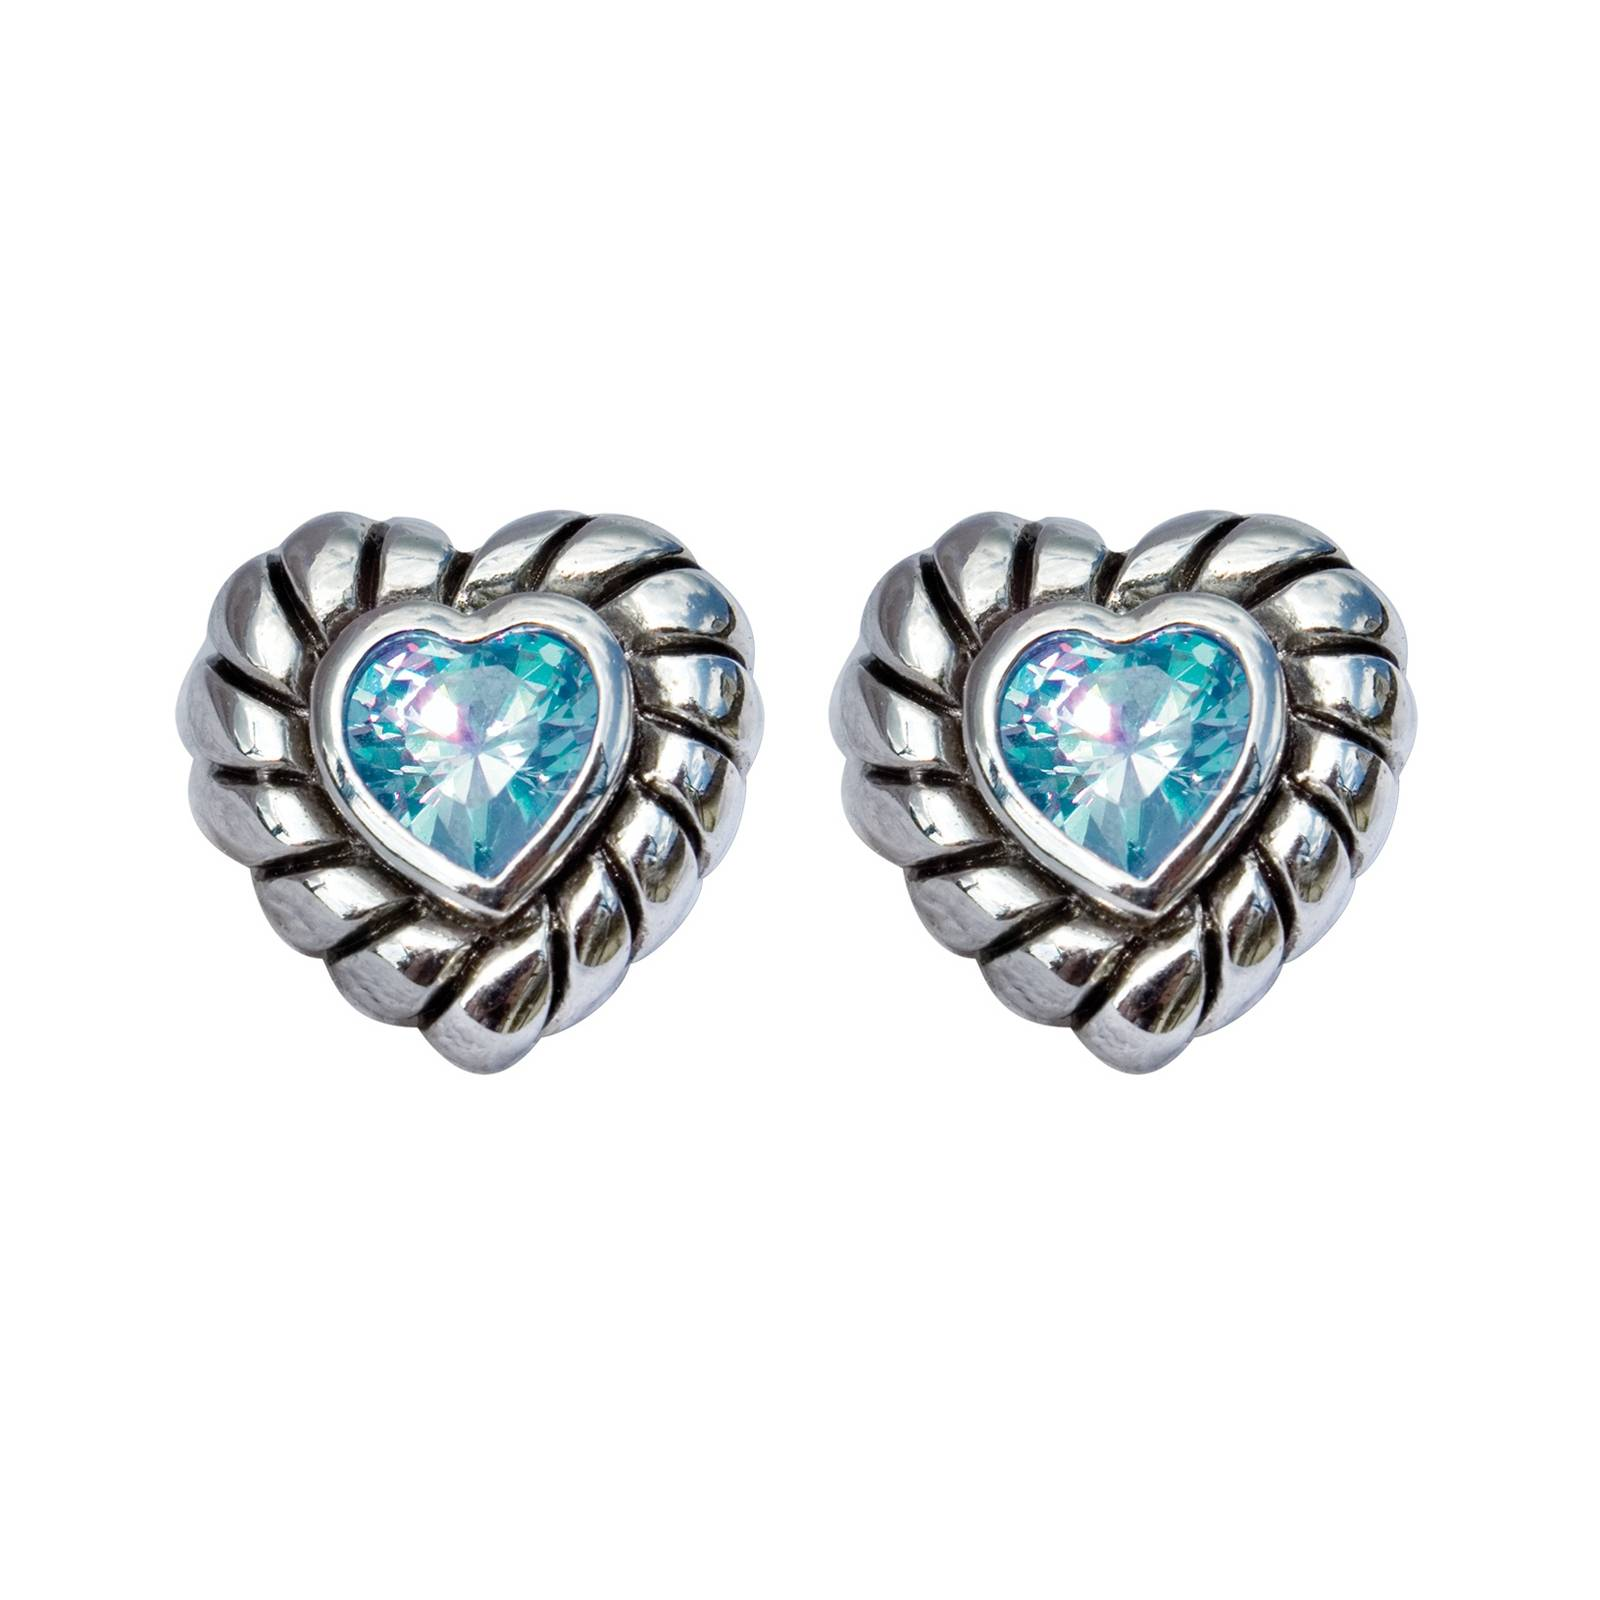 Perris Crystal Heart Post Earrings